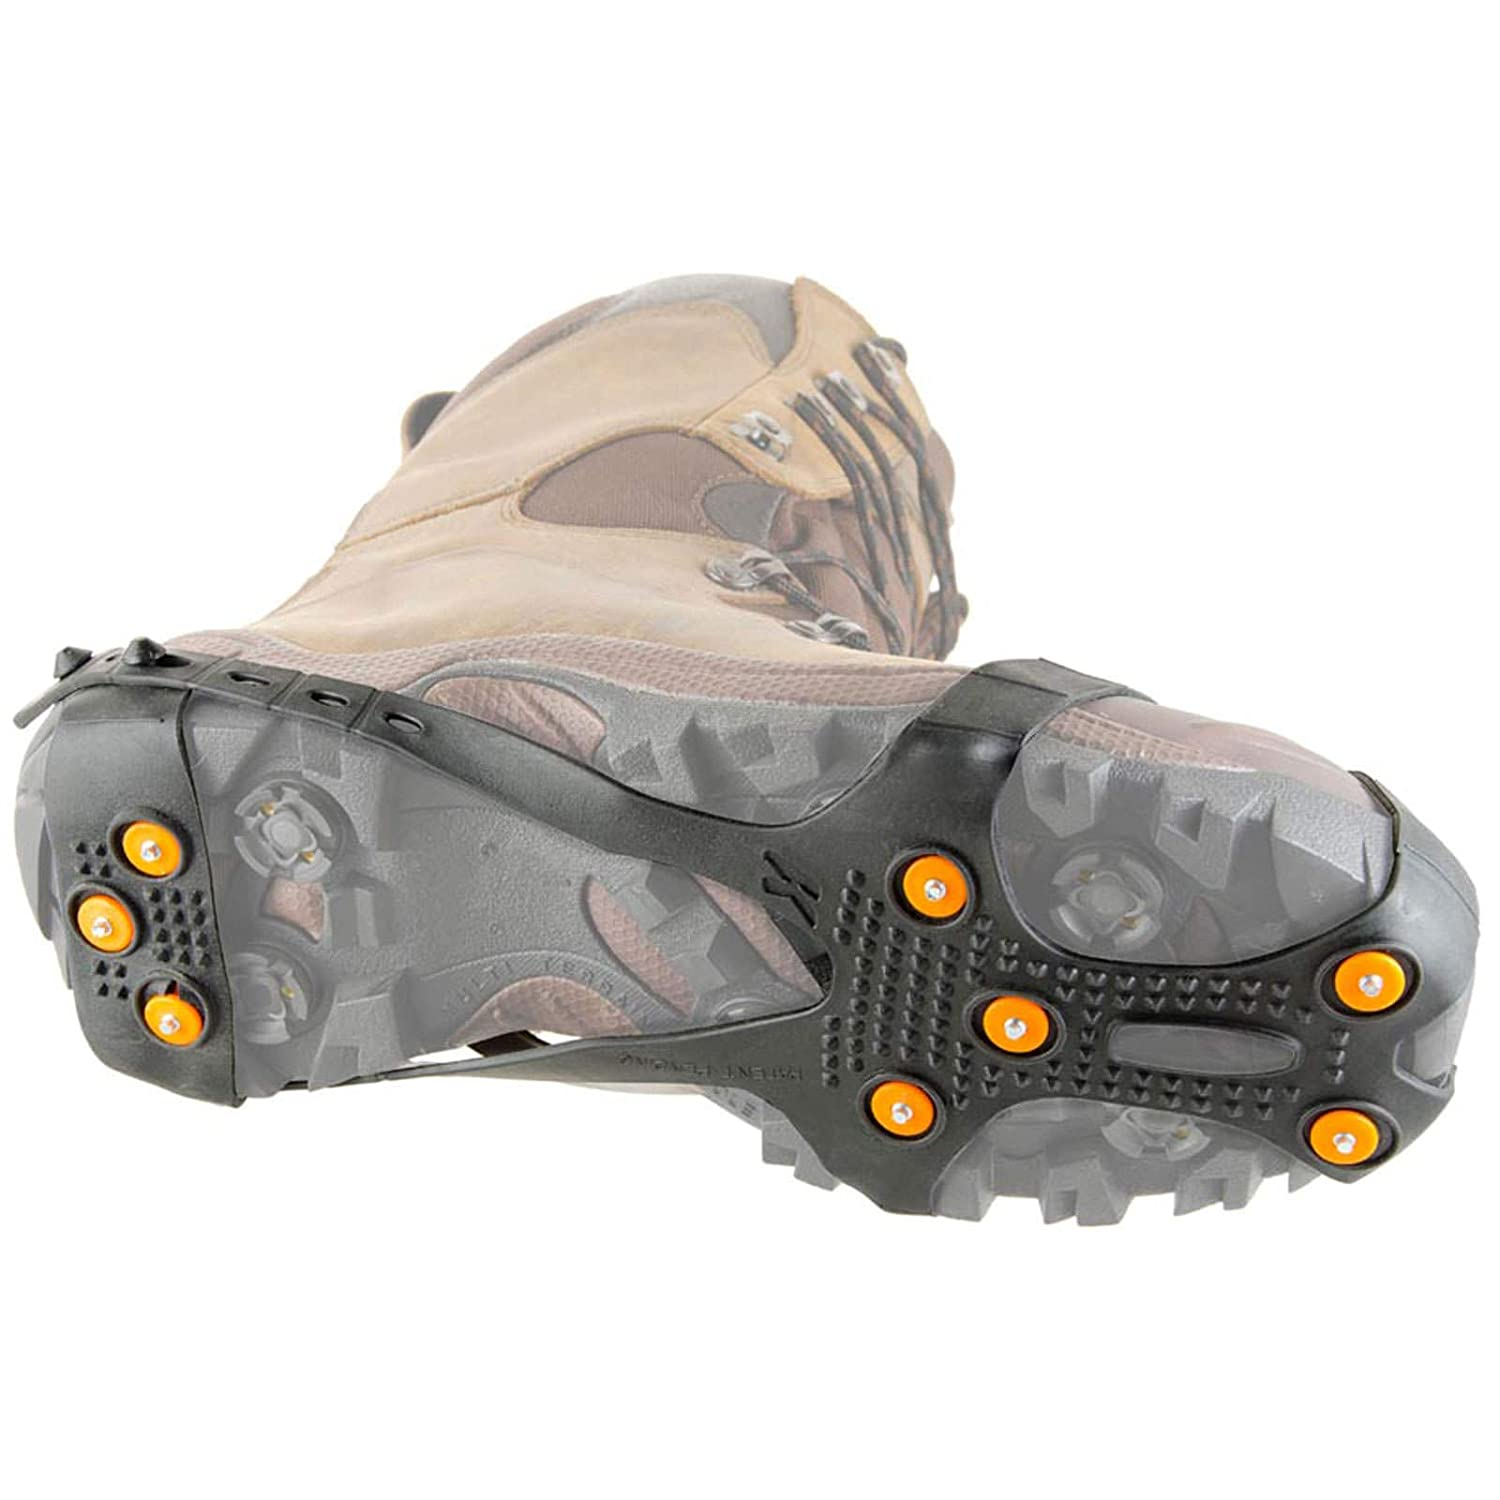 Korkers Ultra Ice Cleat Cardboard Pack